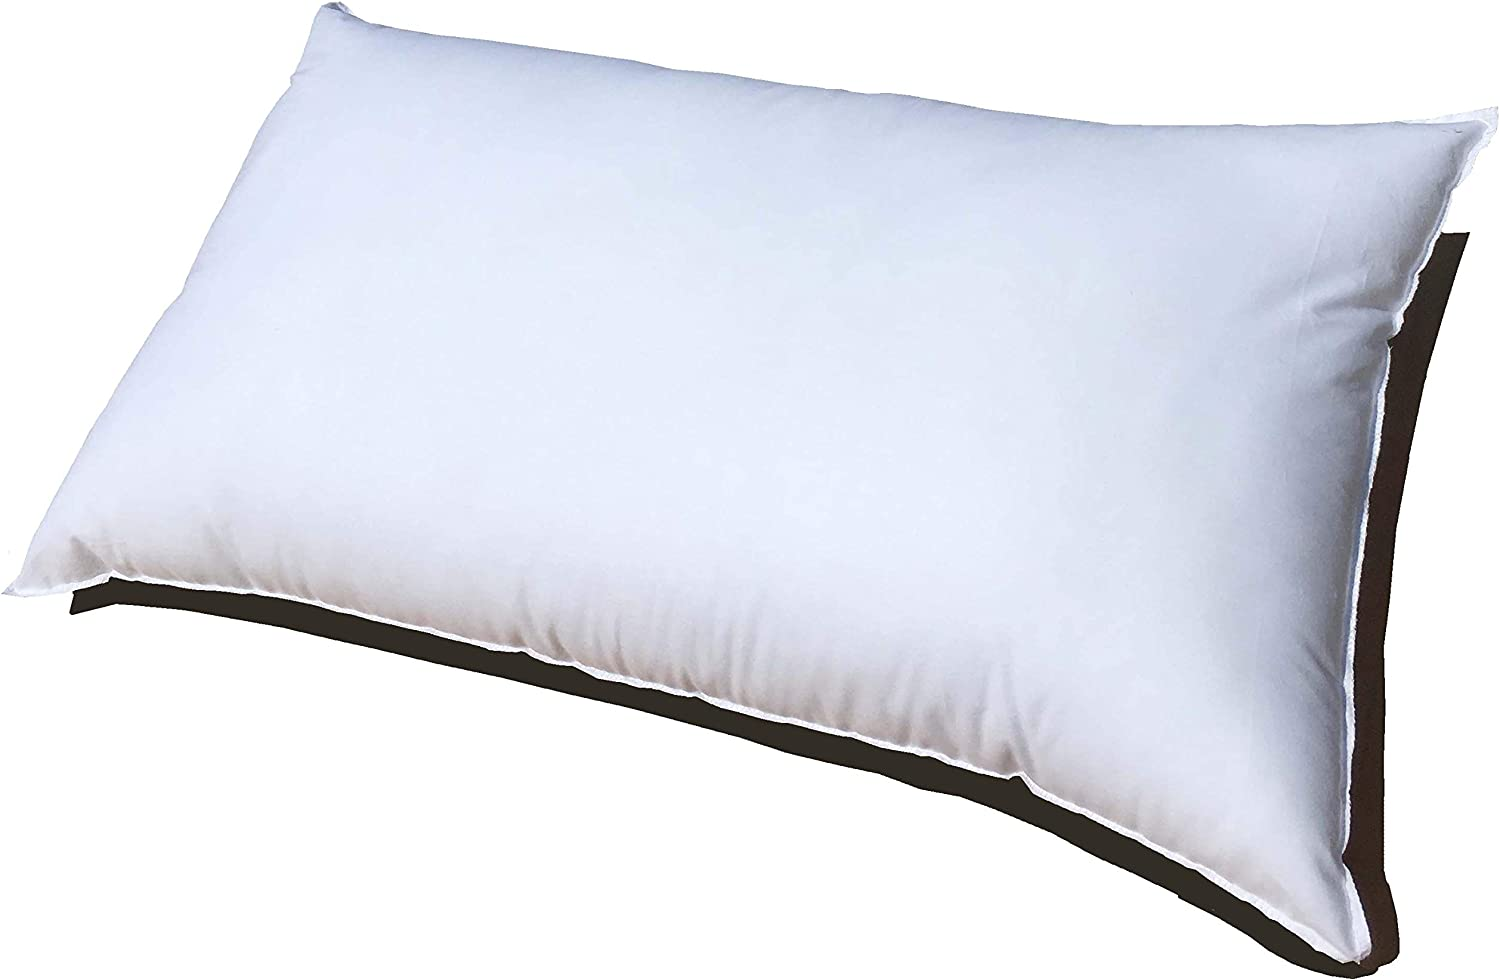 Pillowflex 21x37 Inch Premium Polyester Filled Pillow Form Insert - Machine Washable - Oblong Rectangle King - Made In USA